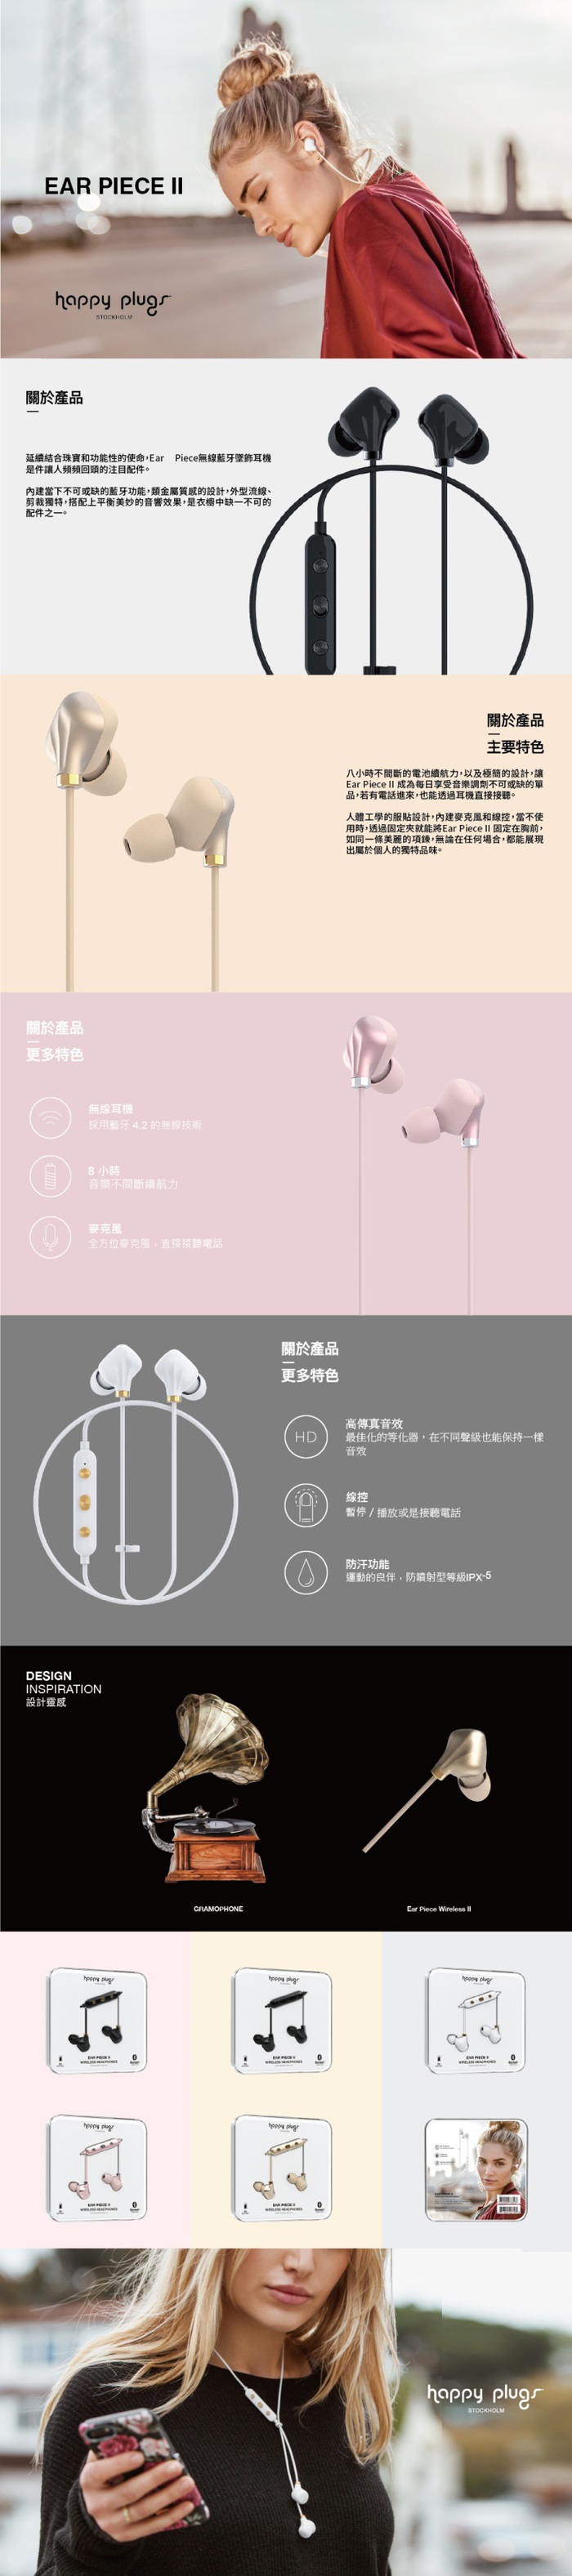 HAPPY PLUGS|Ear Piece II 藍牙墜飾耳道式耳機(粉色金)